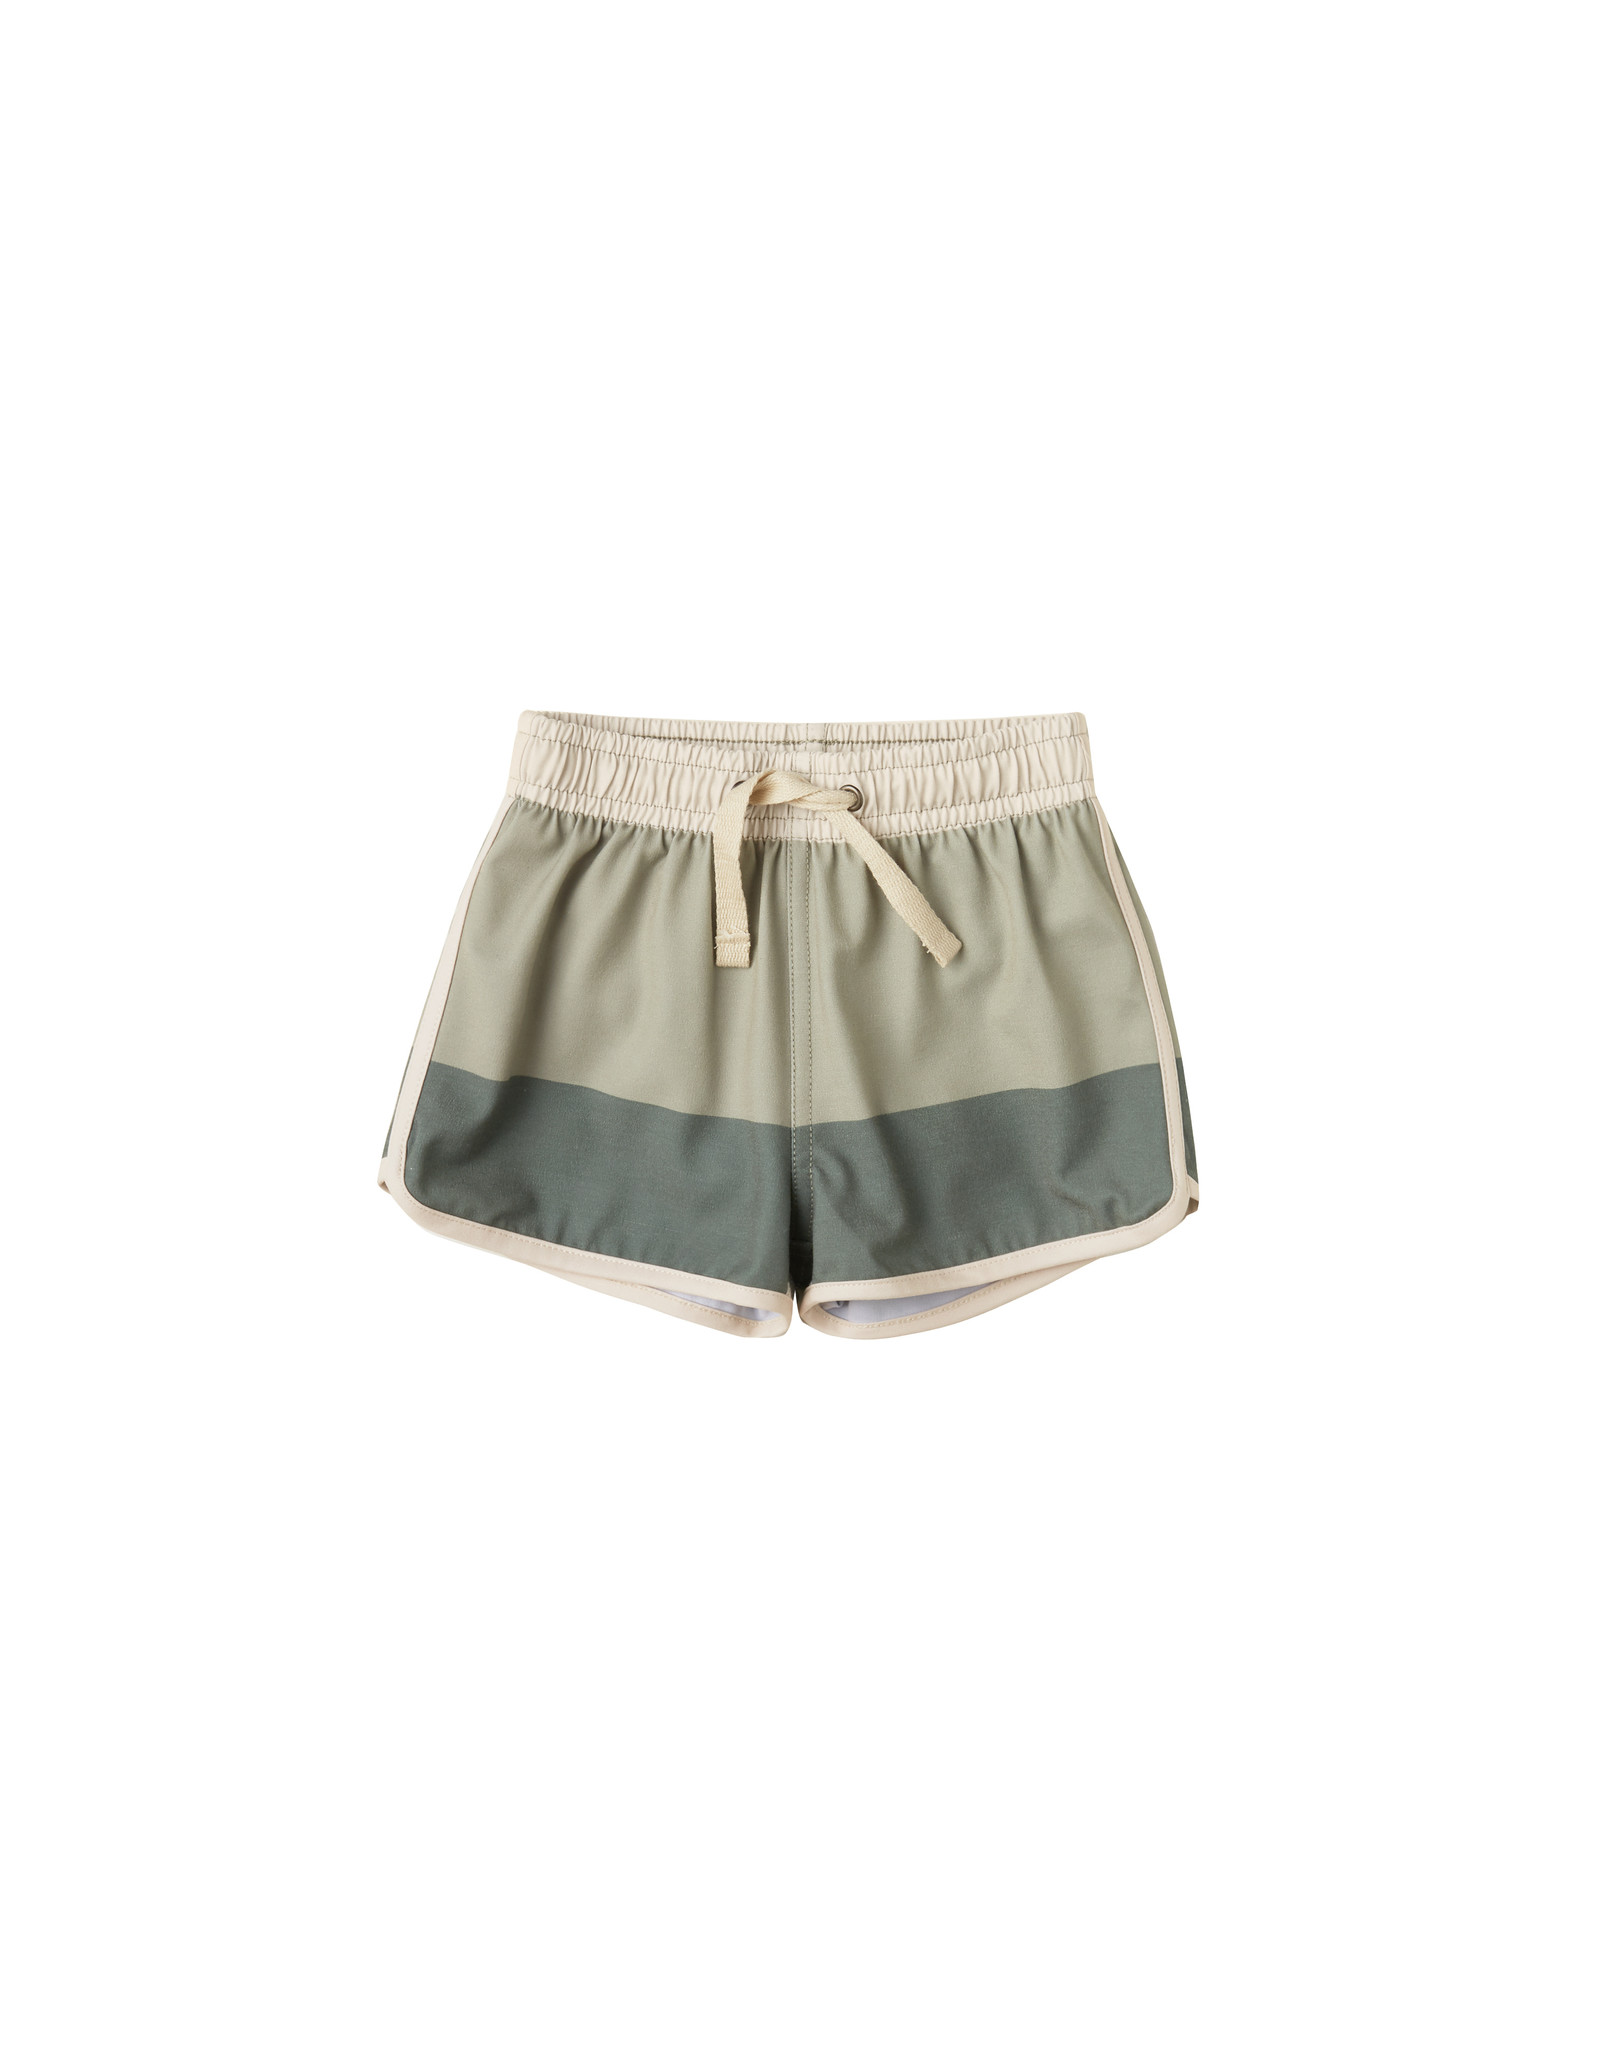 Rylee + Cru Swim Trunk